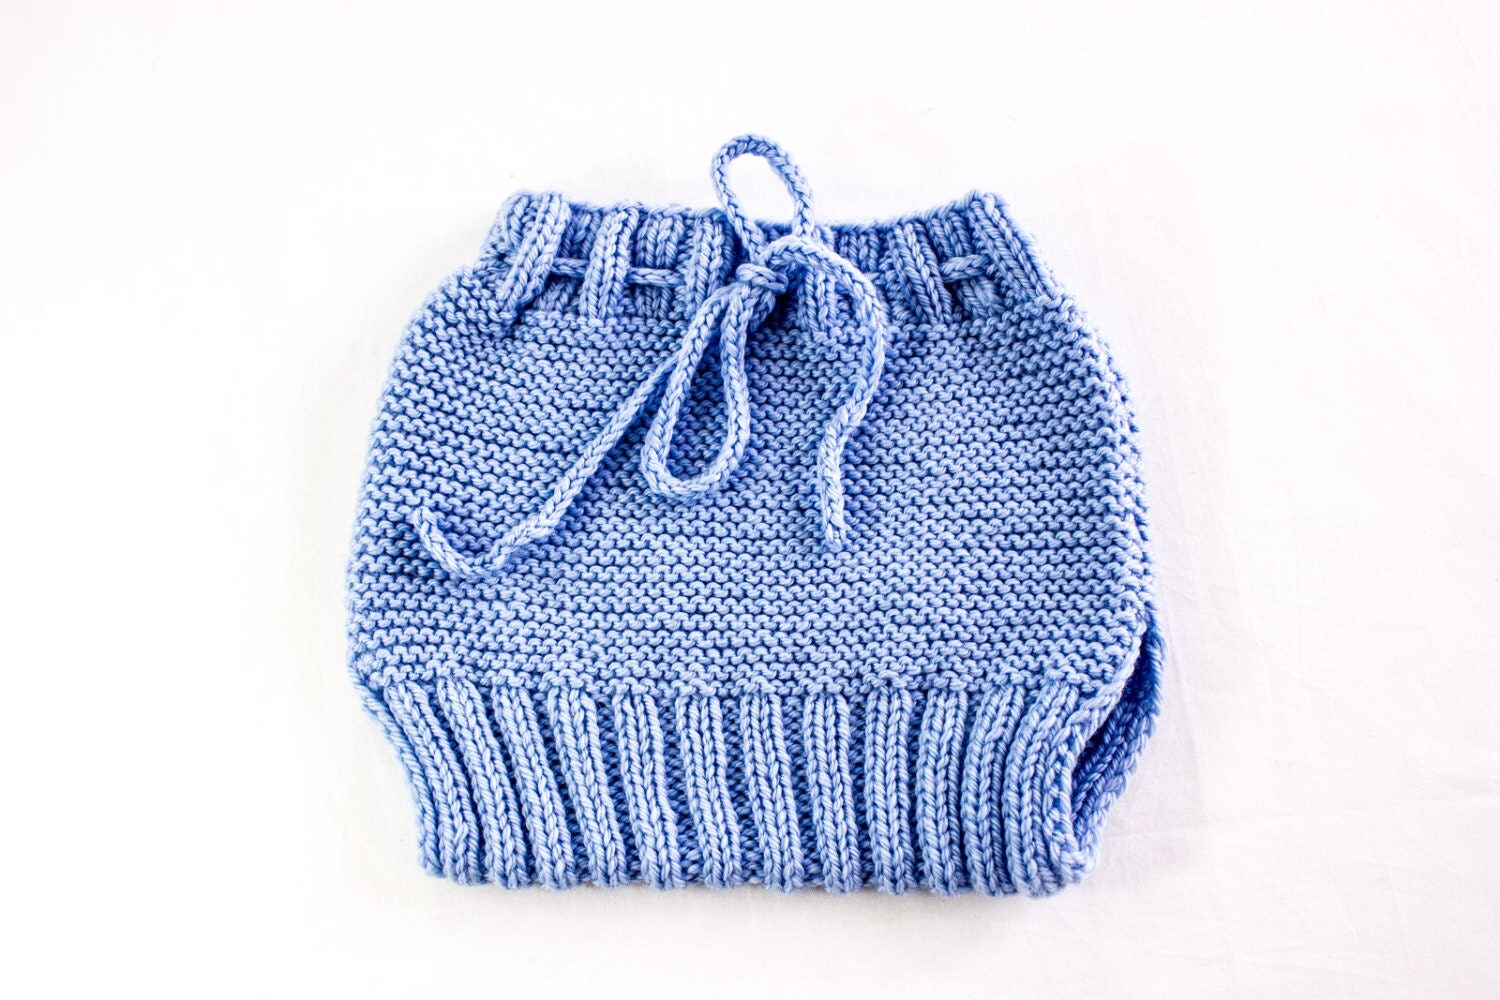 Knitting pattern knitted baby soakers pilchers diaper cover this is a digital file bankloansurffo Images